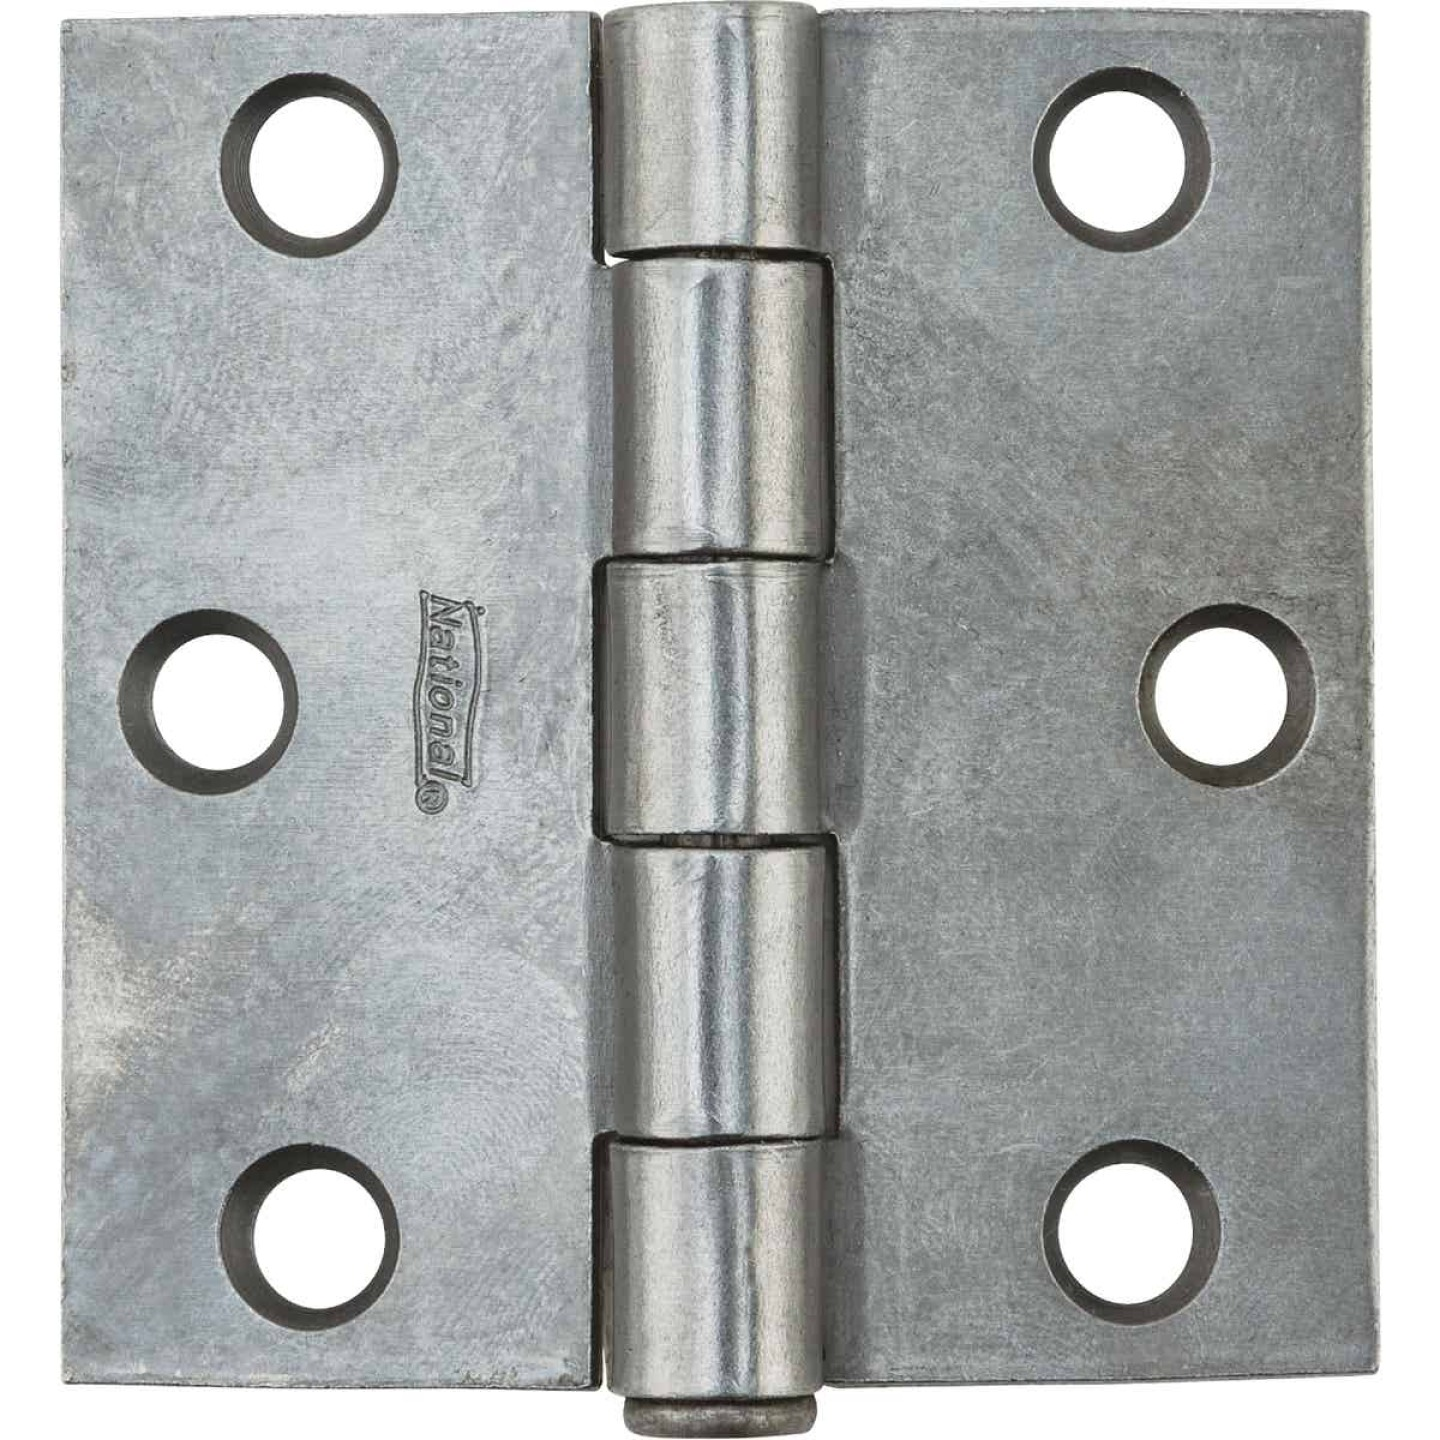 National 2-1/2 In. Square Plain Steel Broad Door Hinge Image 2